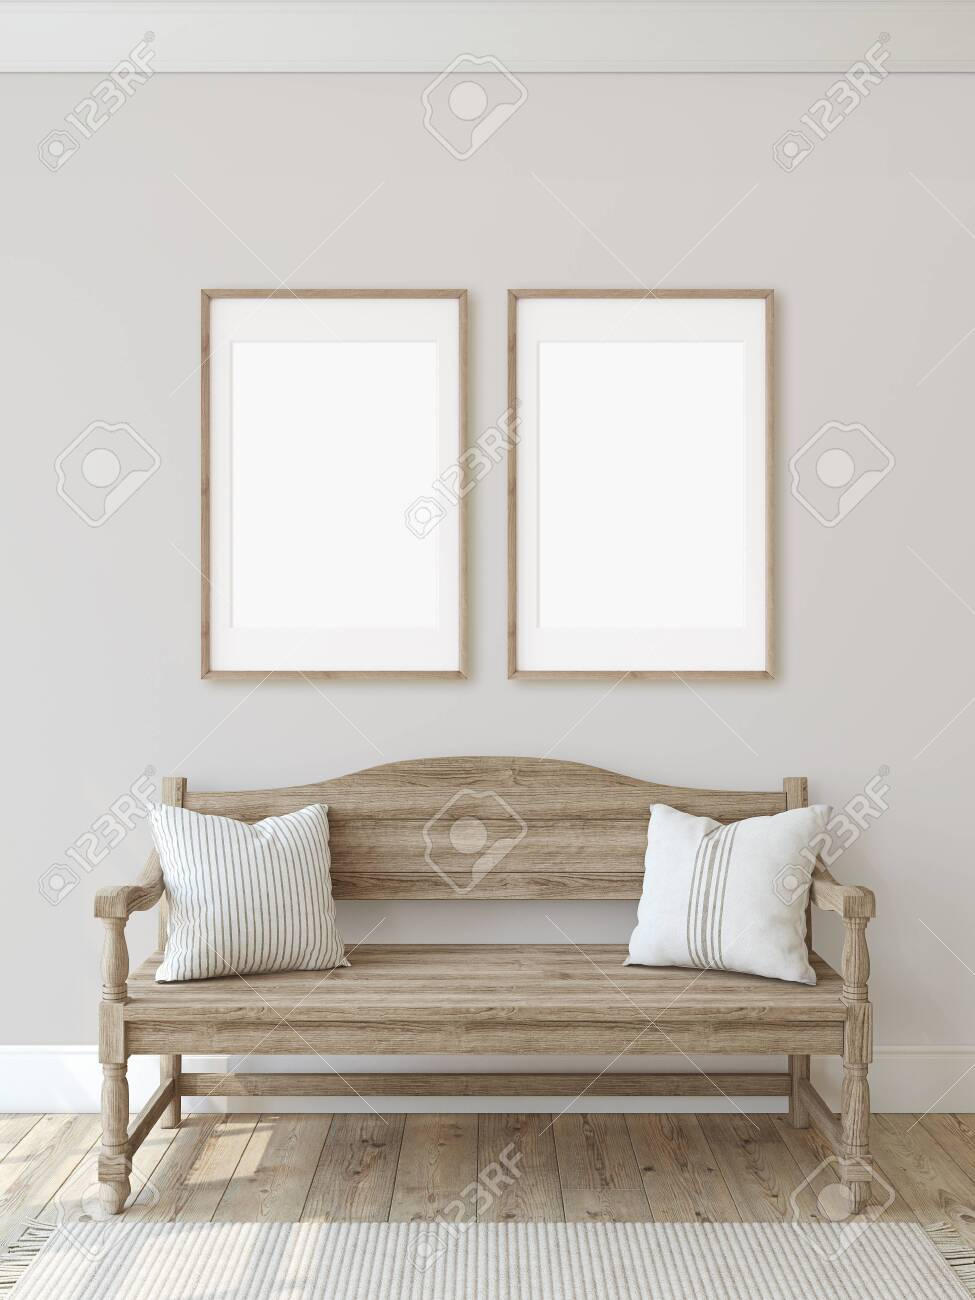 Farmhouse entryway. Wooden bench near beige wall. Frame mockup. Two vertical wooden frames on the wall. 3d render. - 128722494